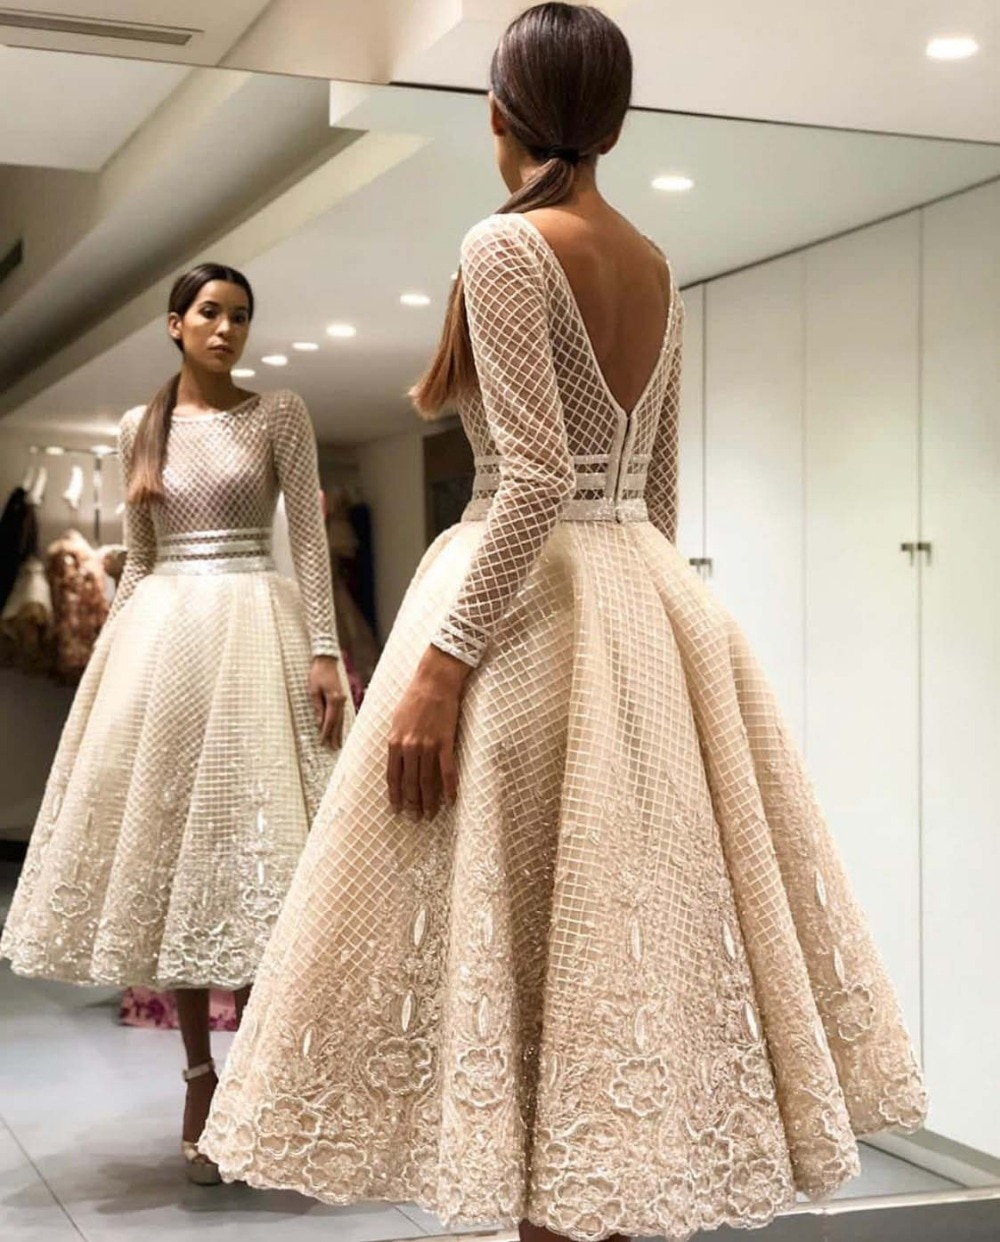 Elegant Bige Color Unique Lace Cocktail Dresses Full Sleeves V-Back Tea-Length Prom Gowns Robe De Soiree Champagne Party Dresses